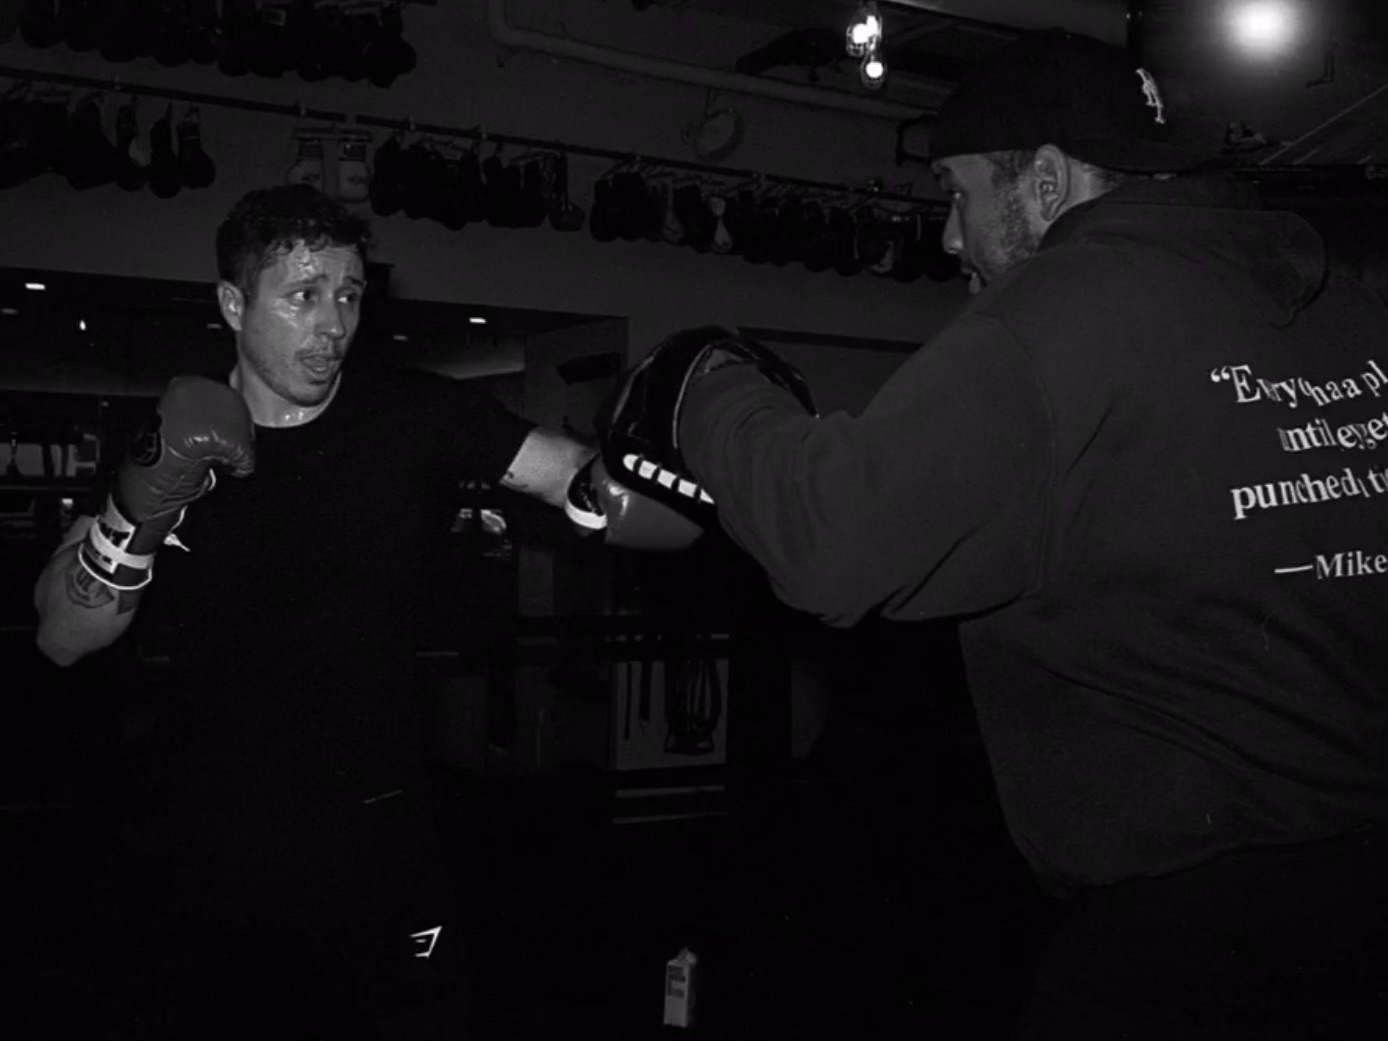 Corey B, Social Media Star Who Slapped Paulie Malignaggi, Discusses Why He Did It With BoxingInsider.com